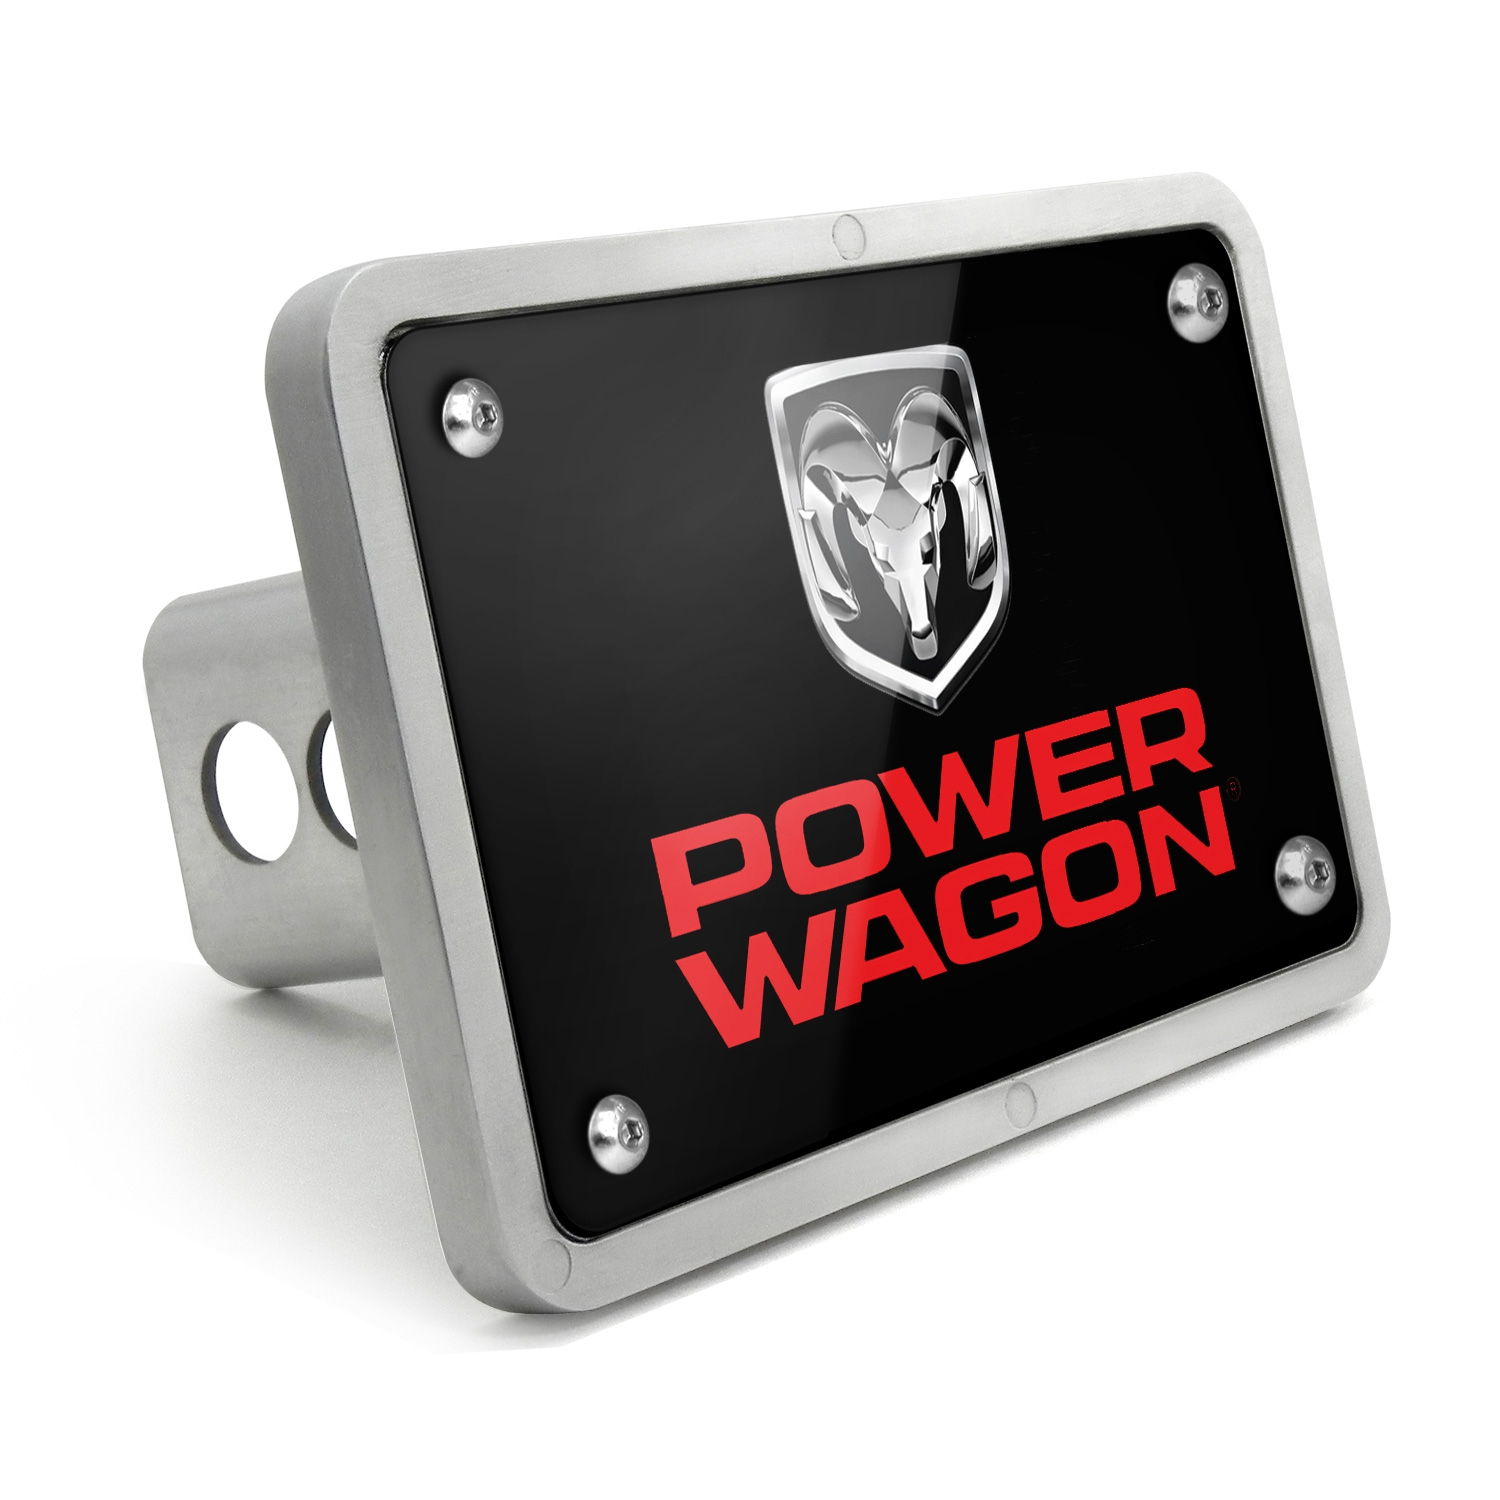 RAM Power Wagon UV Graphic Black Billet Aluminum 2 inch Tow Hitch Cover